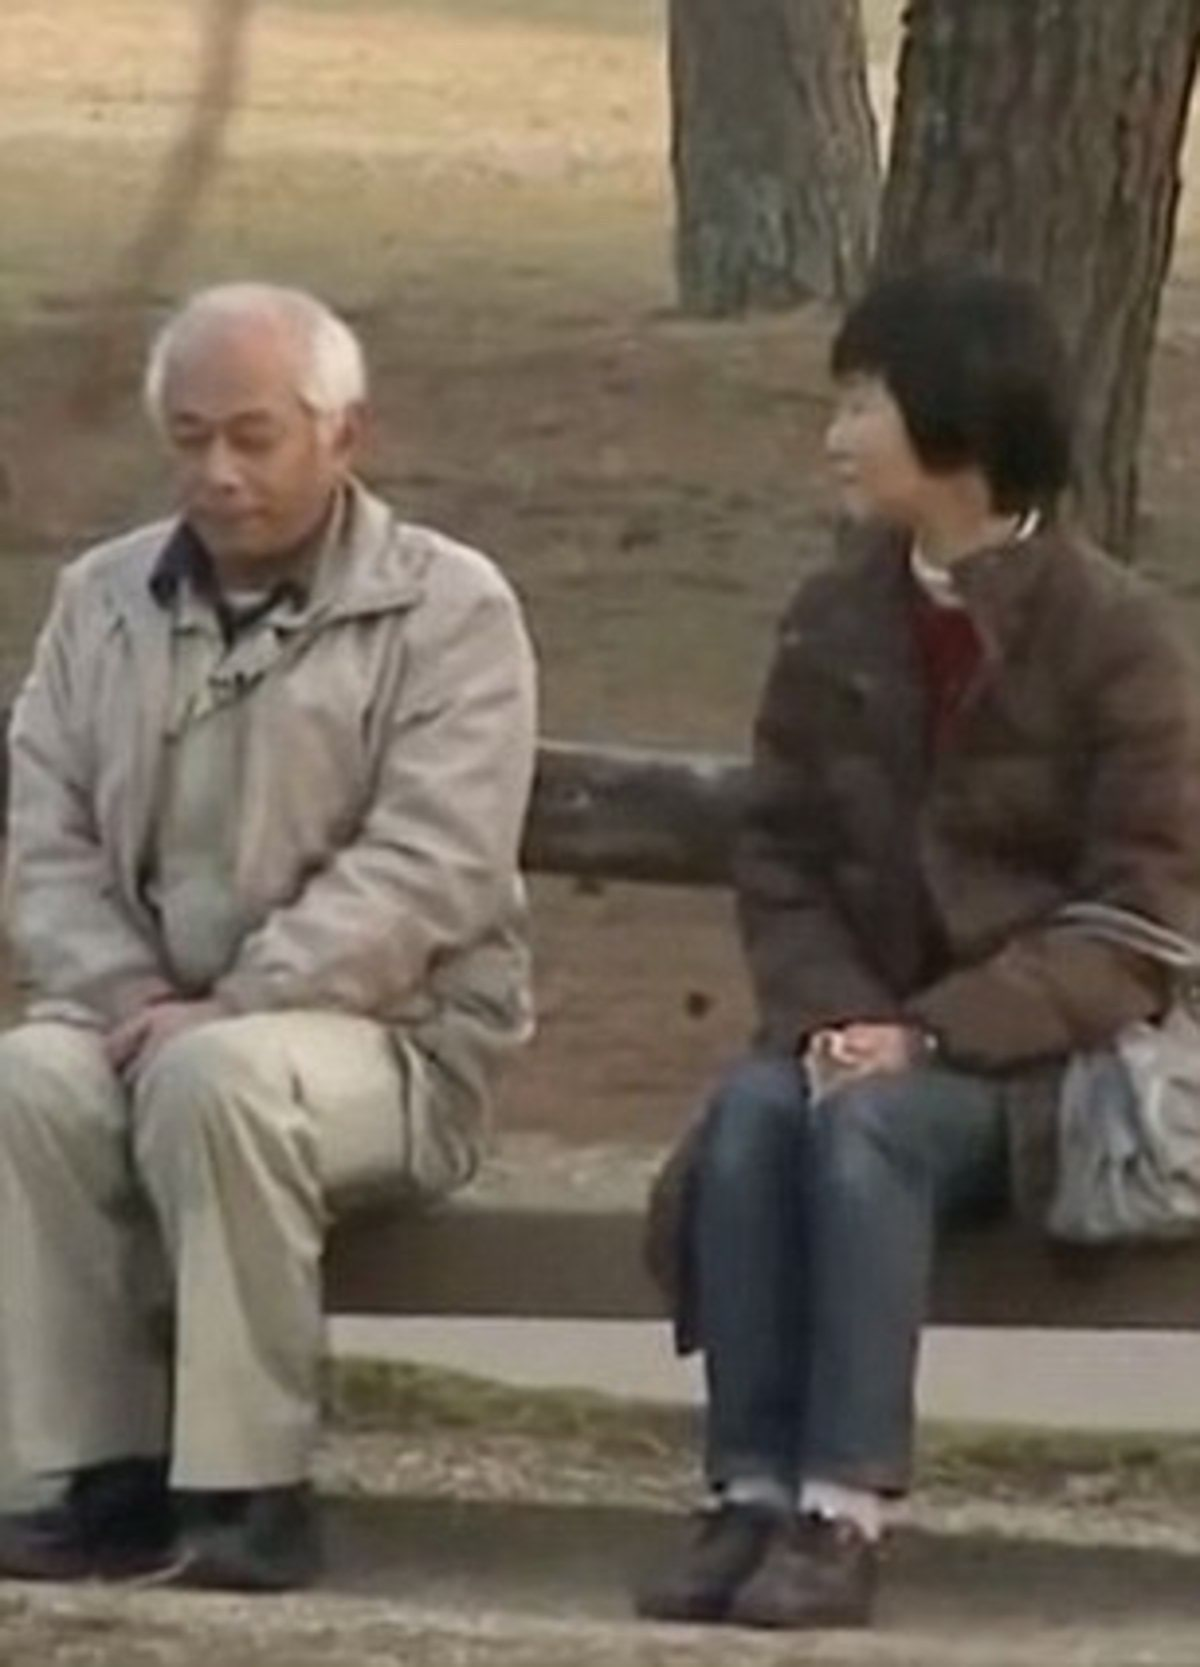 3BBB9A6200000578-4078242-A_meeting_was_arranged_between_them_in_Nara_Park_where_they_had_-m-6_1483203061108